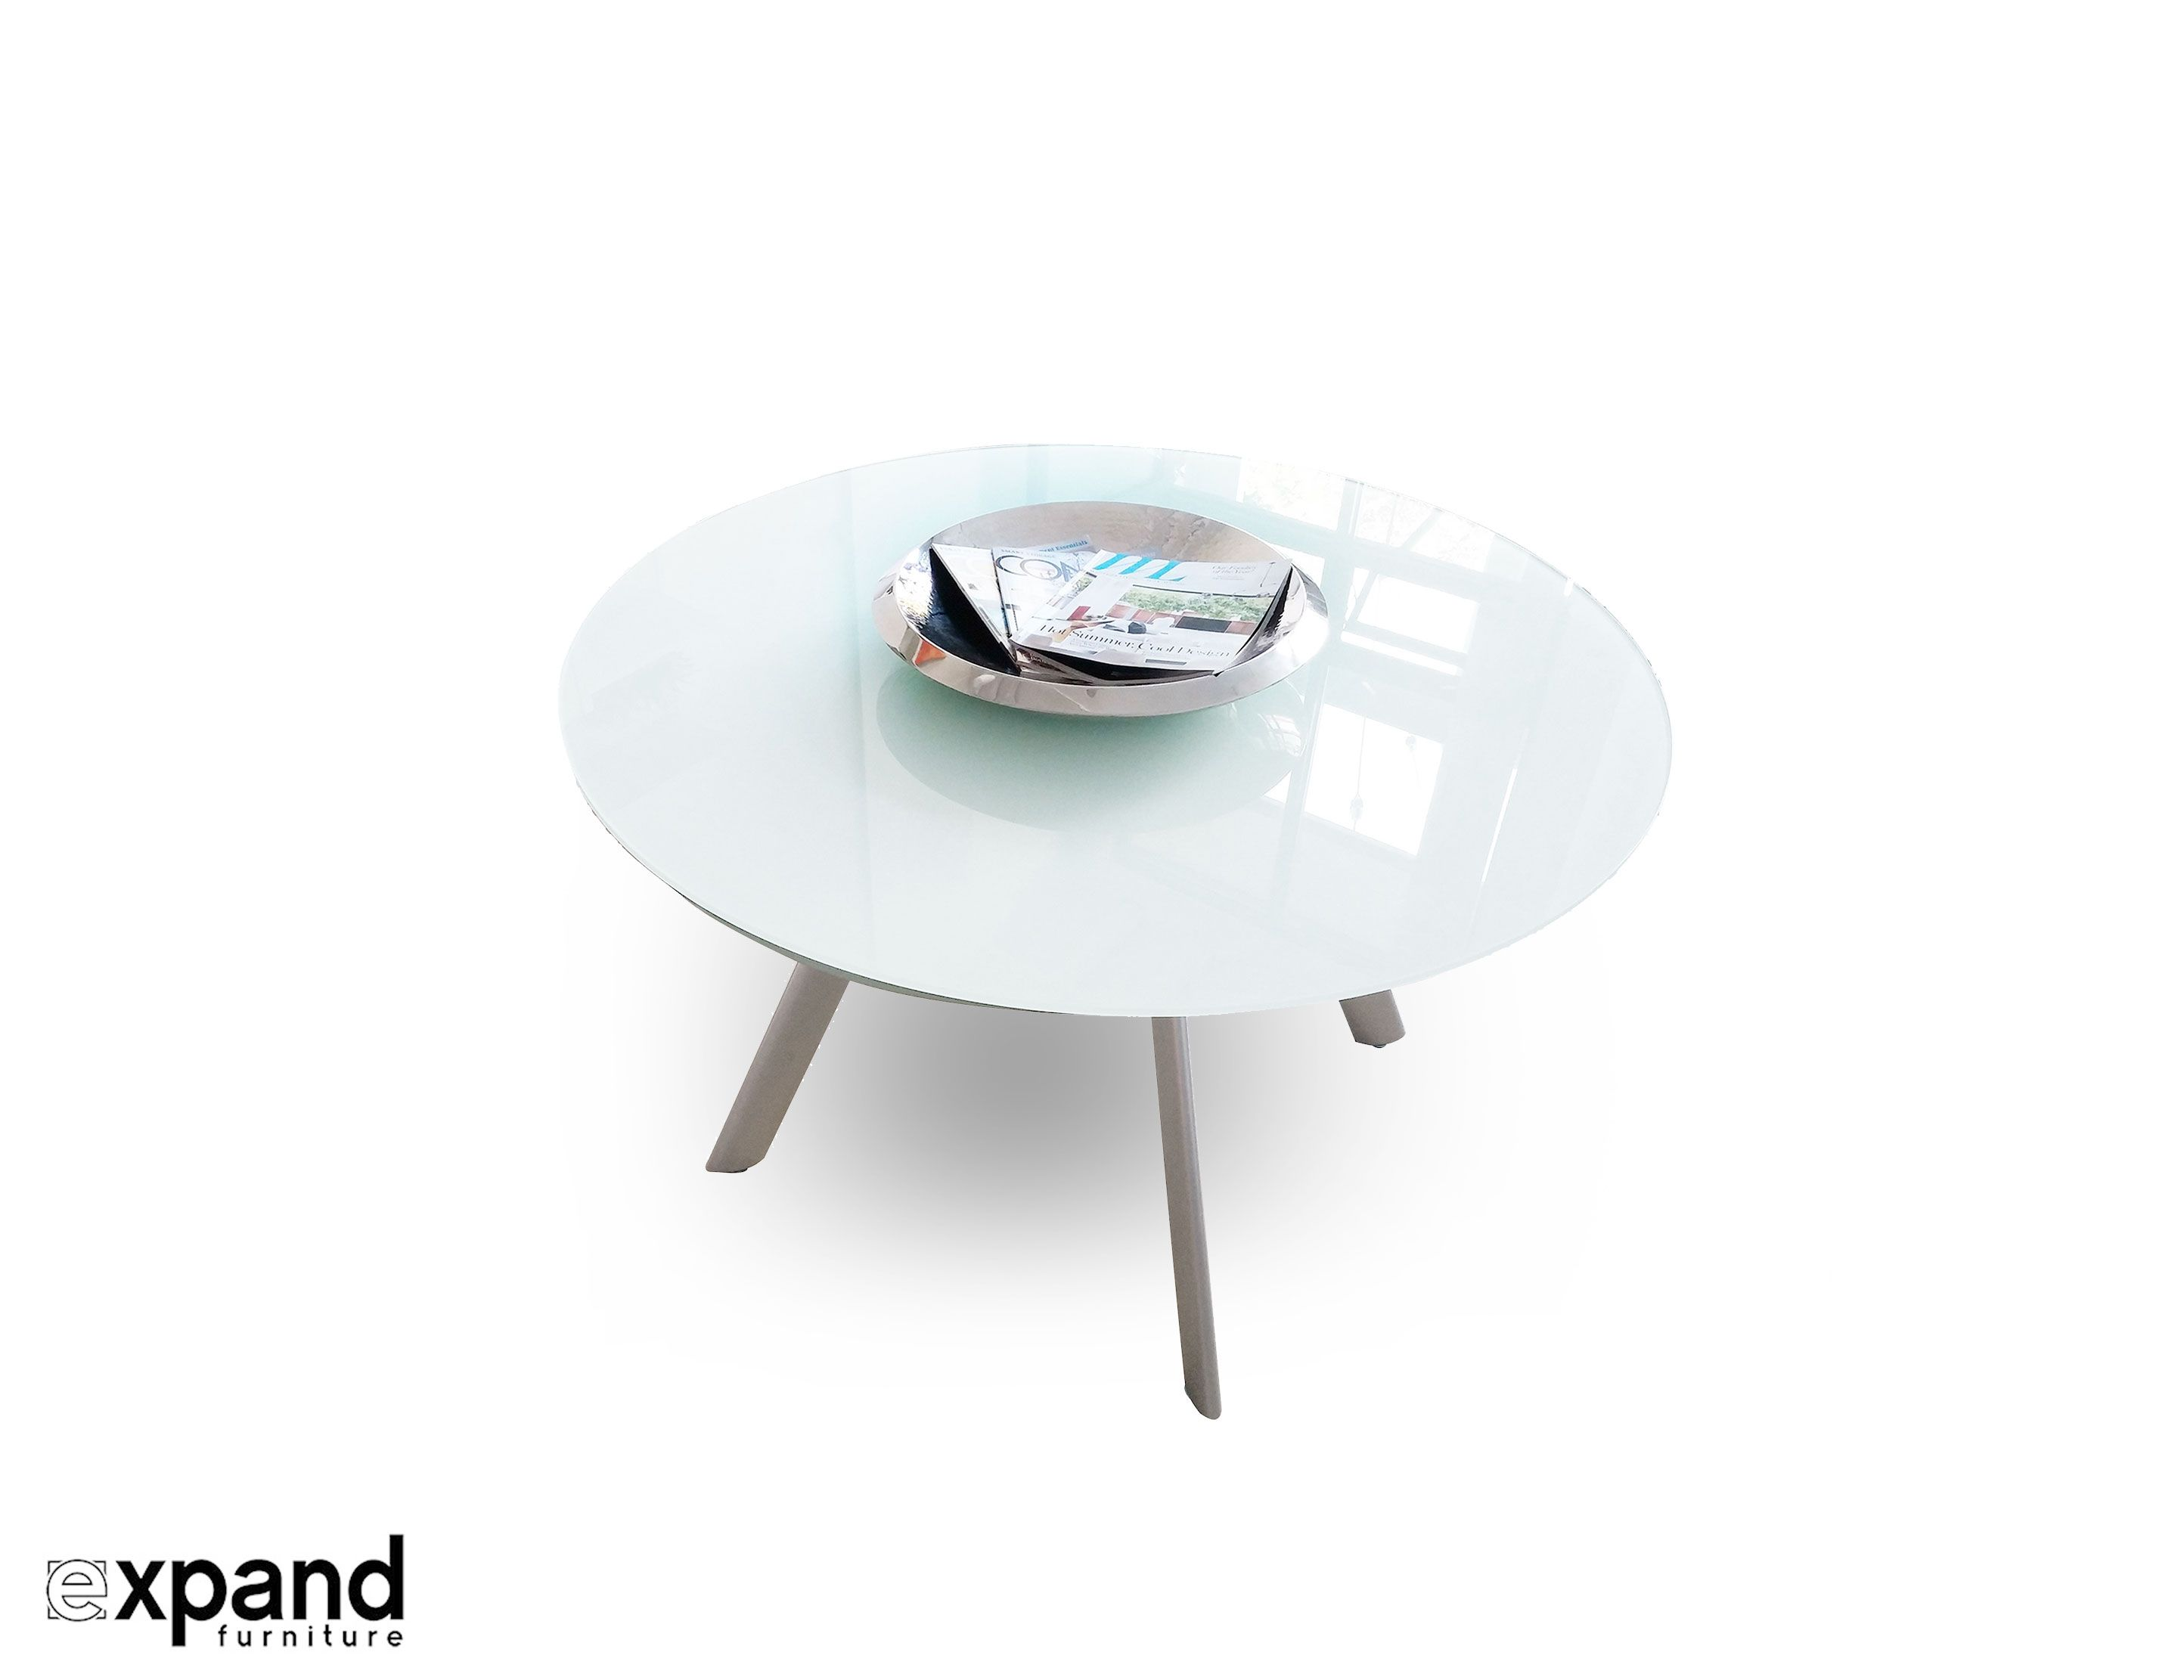 The Butterfly Expandable Round Glass Dining Table Glass Round Dining Table Glass Dining Table Glass Dinning Table [ 2222 x 2888 Pixel ]